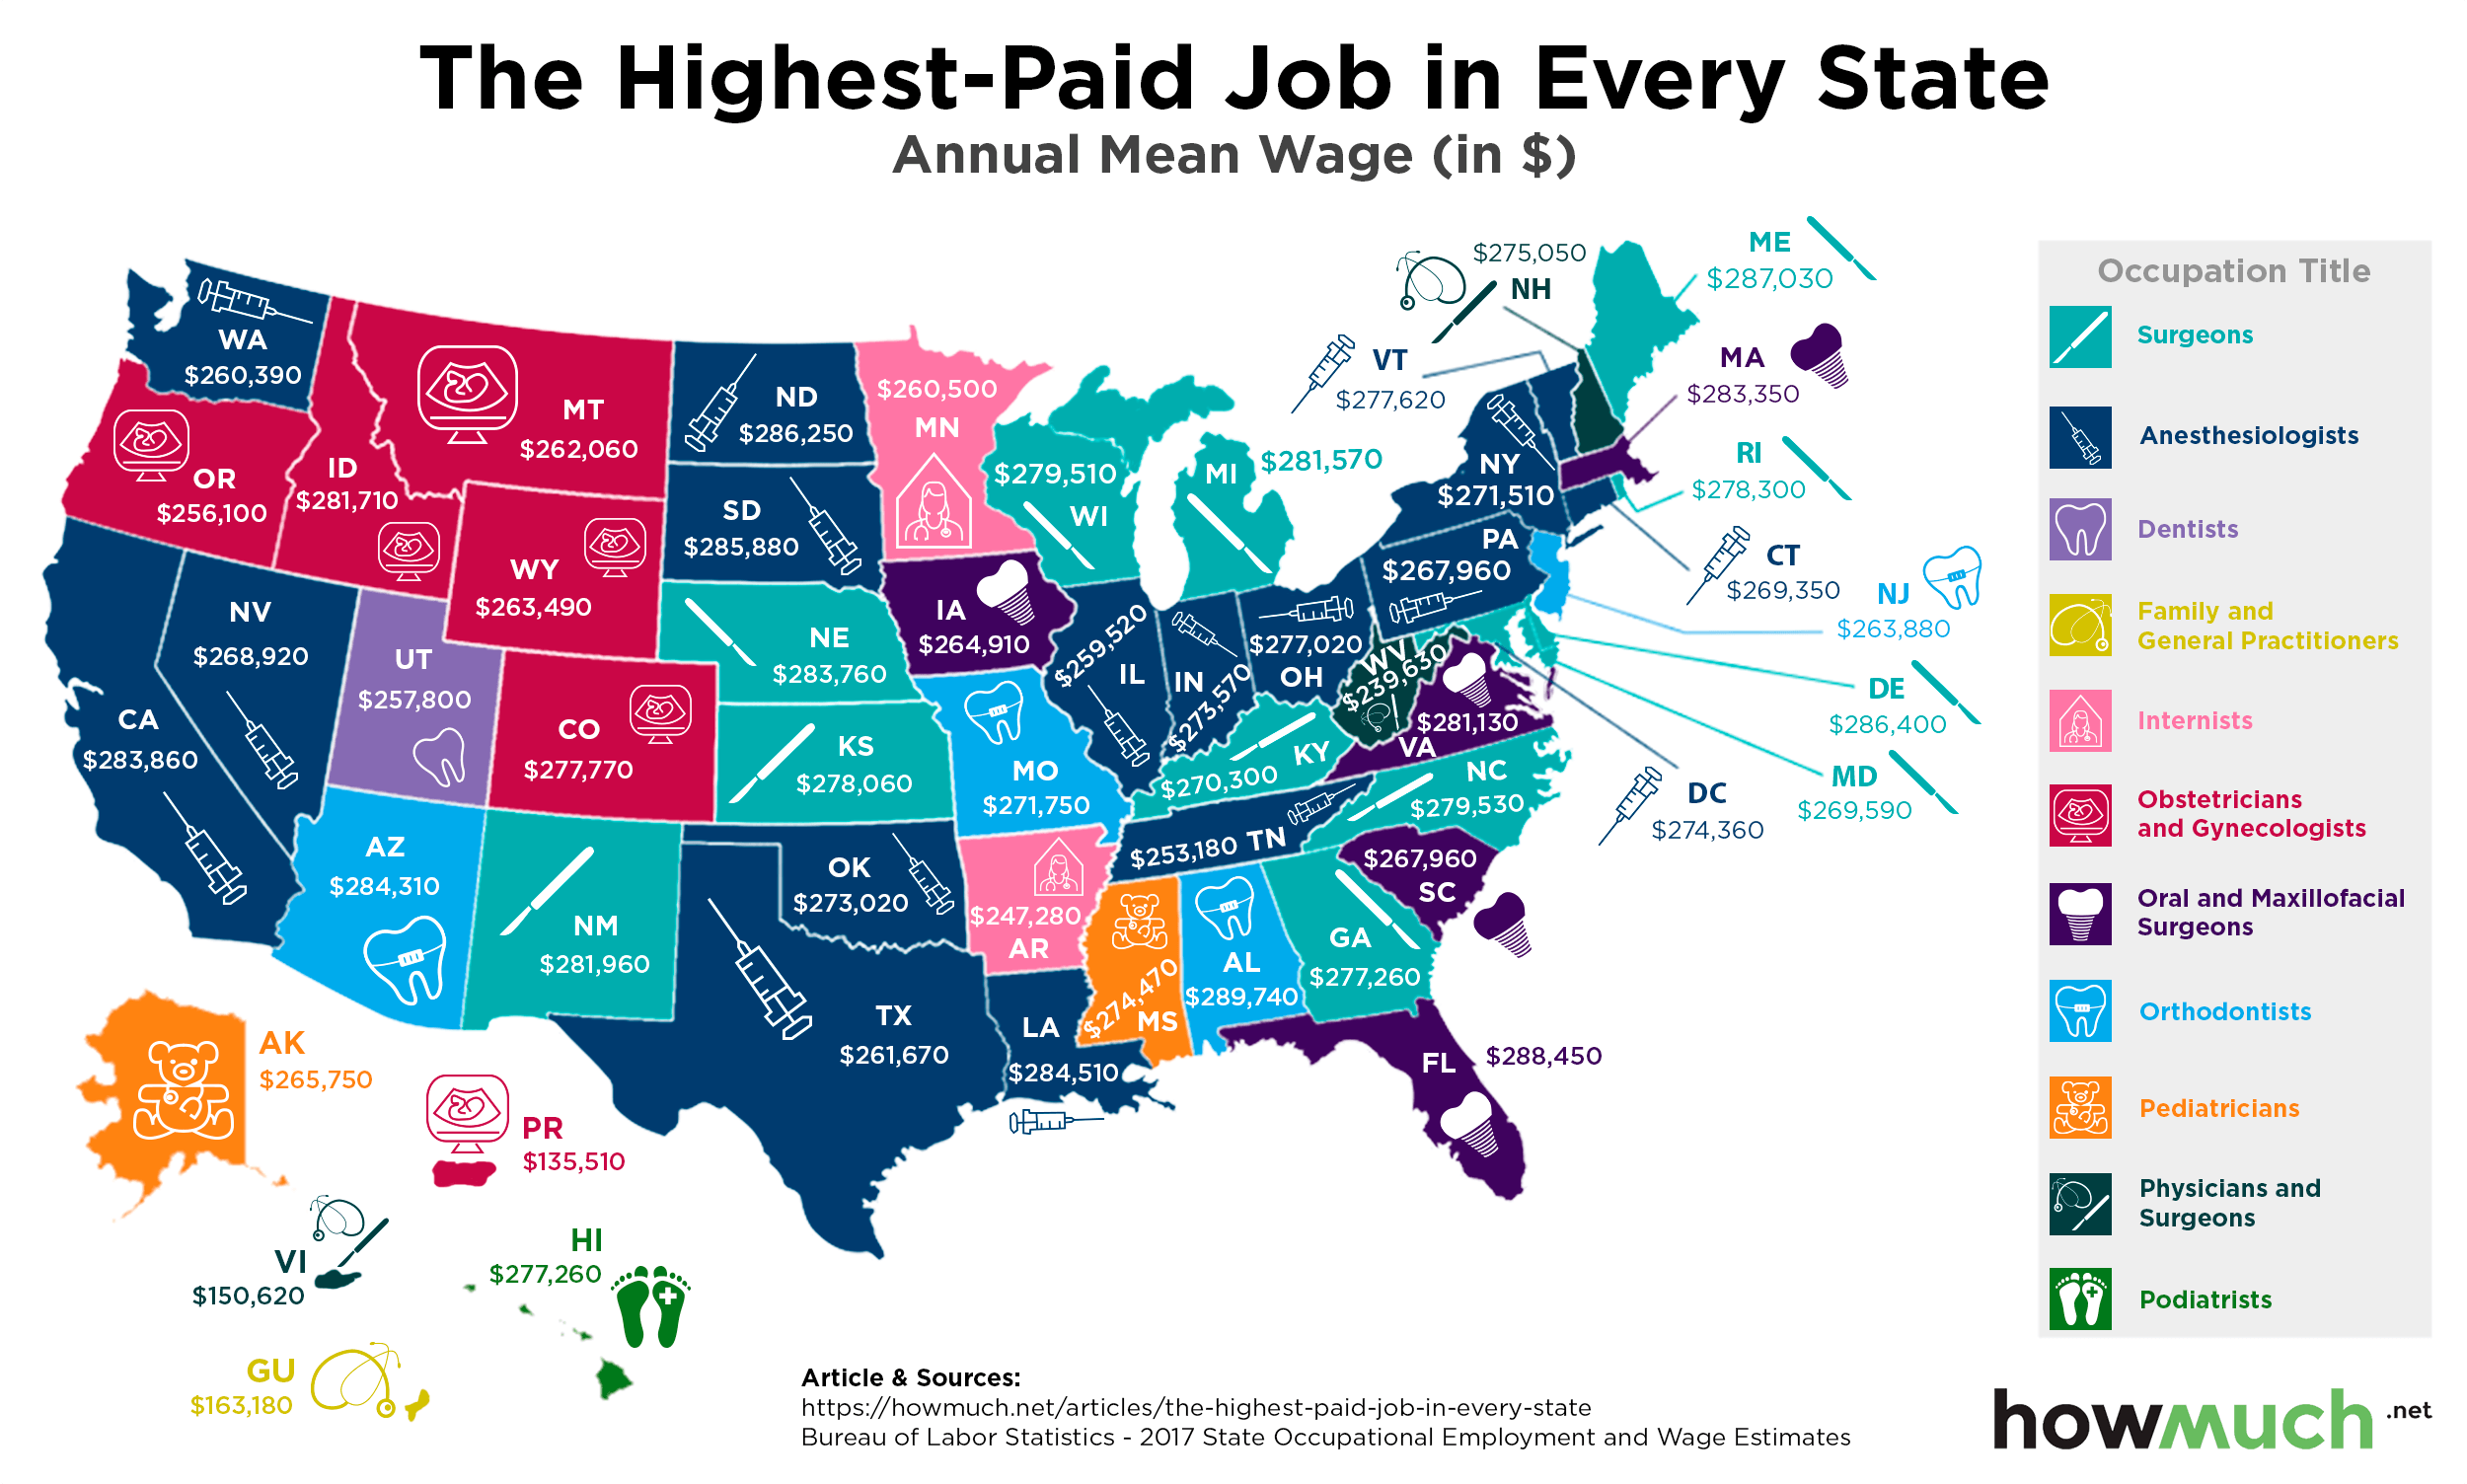 d2ac70ac1140 Visualizing the Highest-Paid Job in Every State